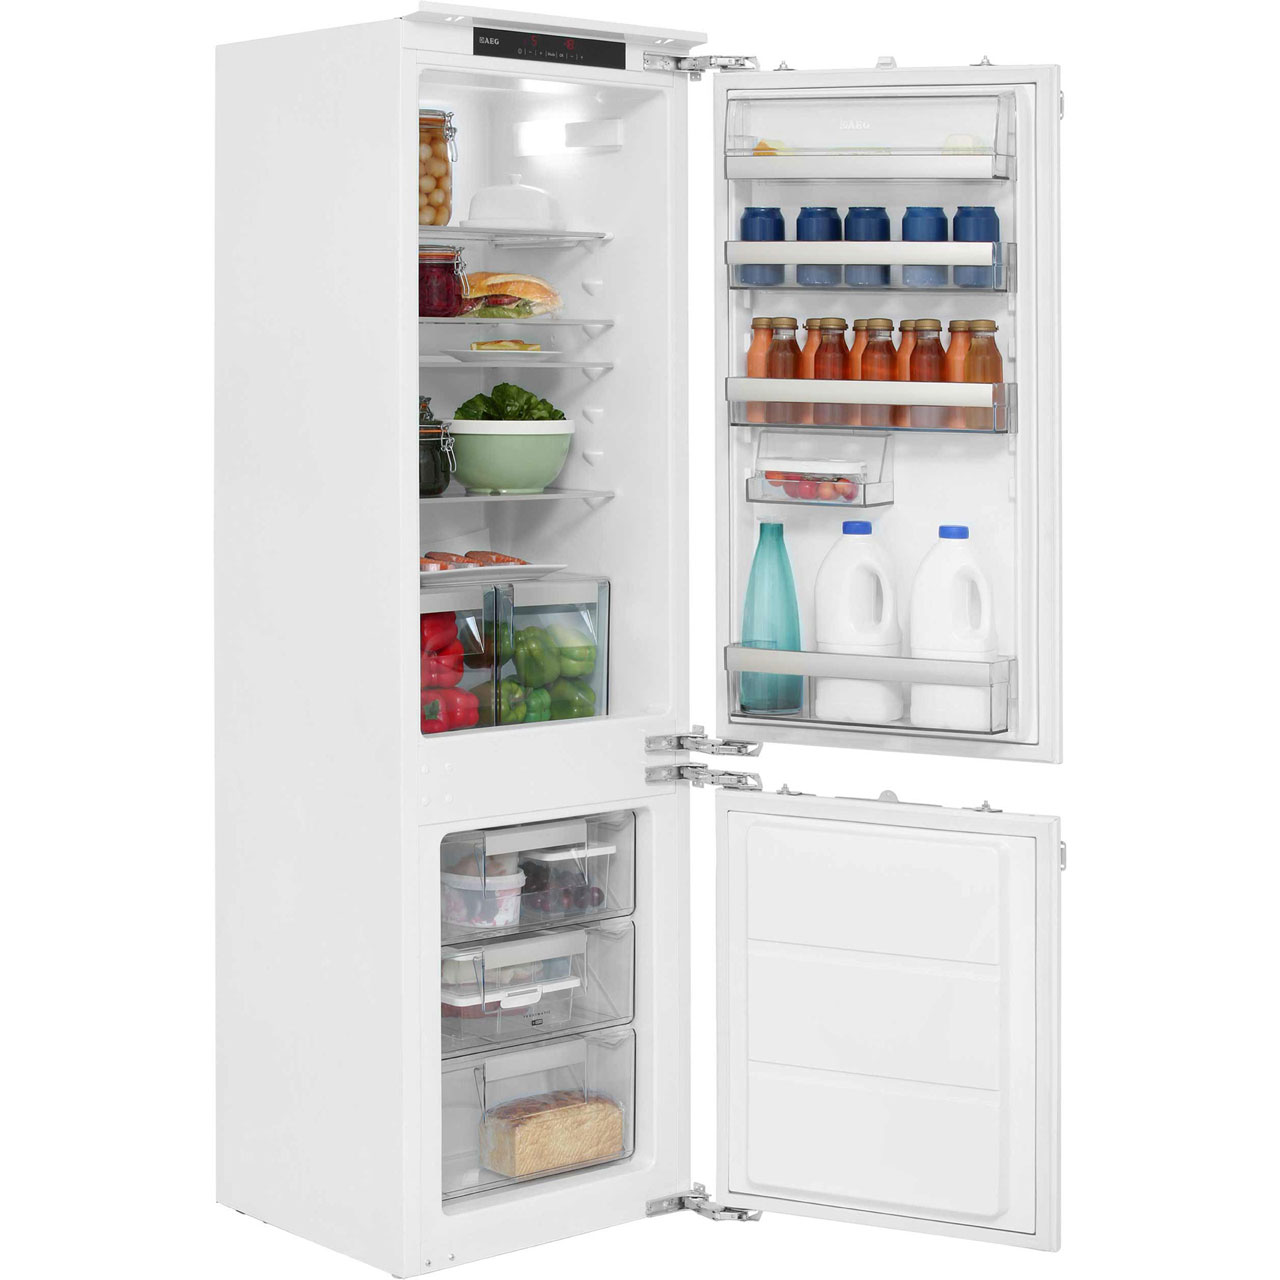 AEG Santo SCS71801F1 Integrated Fridge Freezer in White